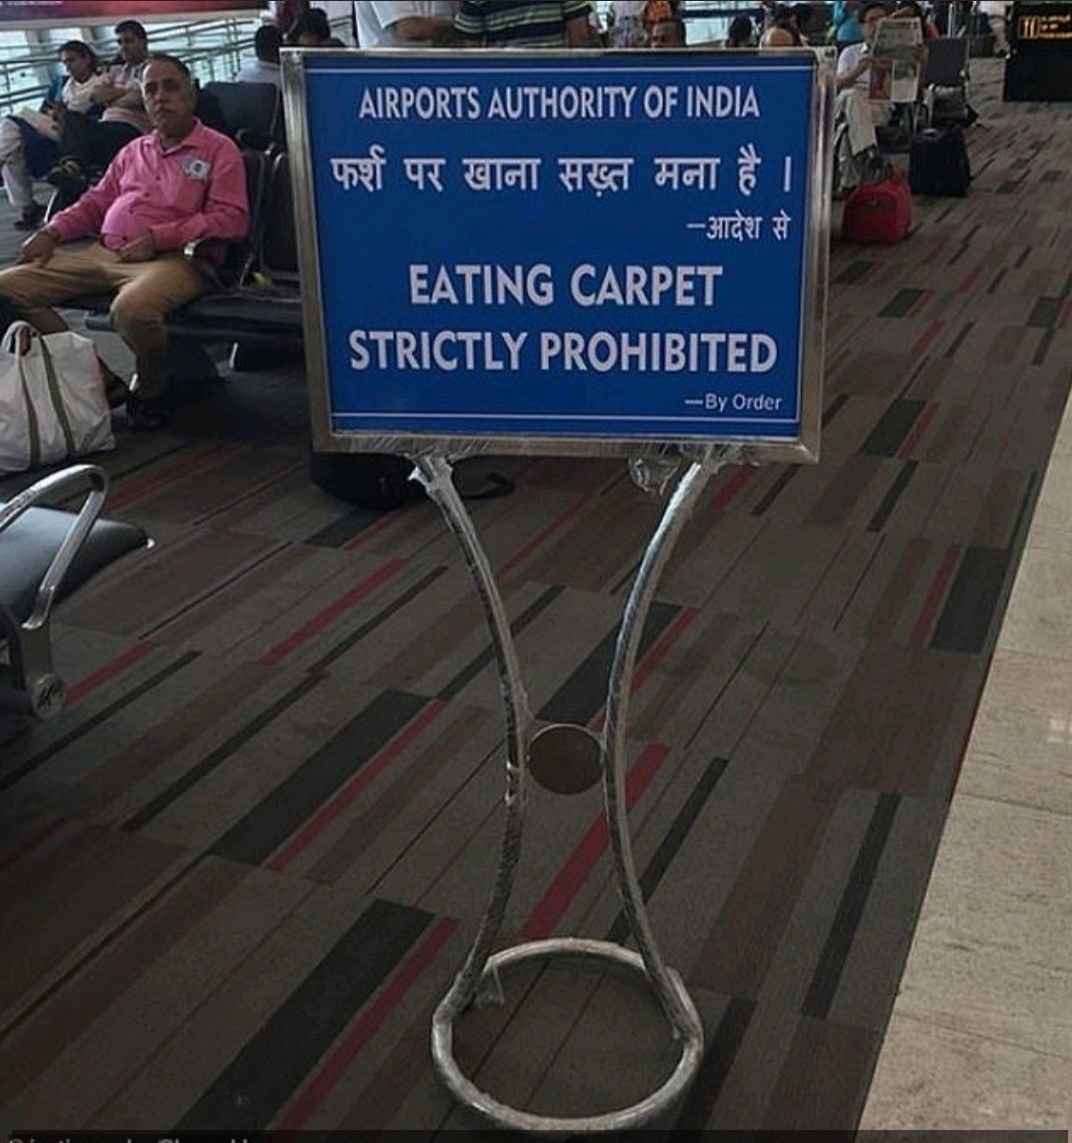 THOSE INDIANS LOVE A BIT OF RUG MUNCHING -